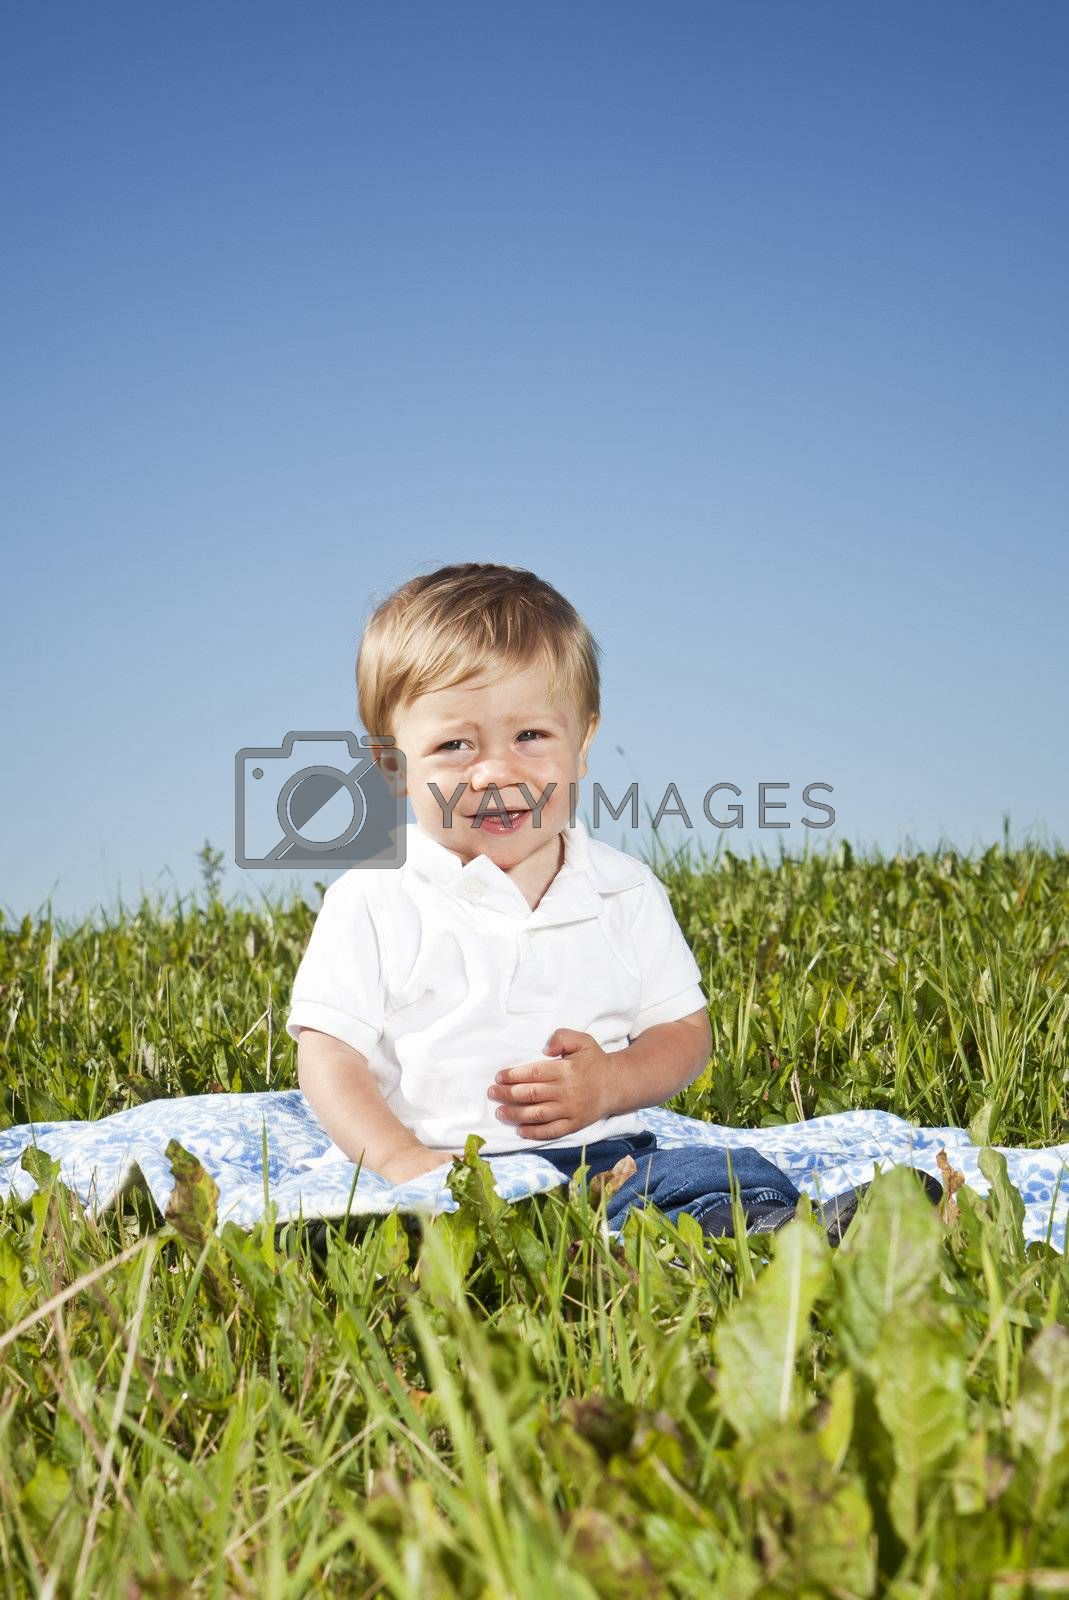 Child sitting in the grass on a sunny day